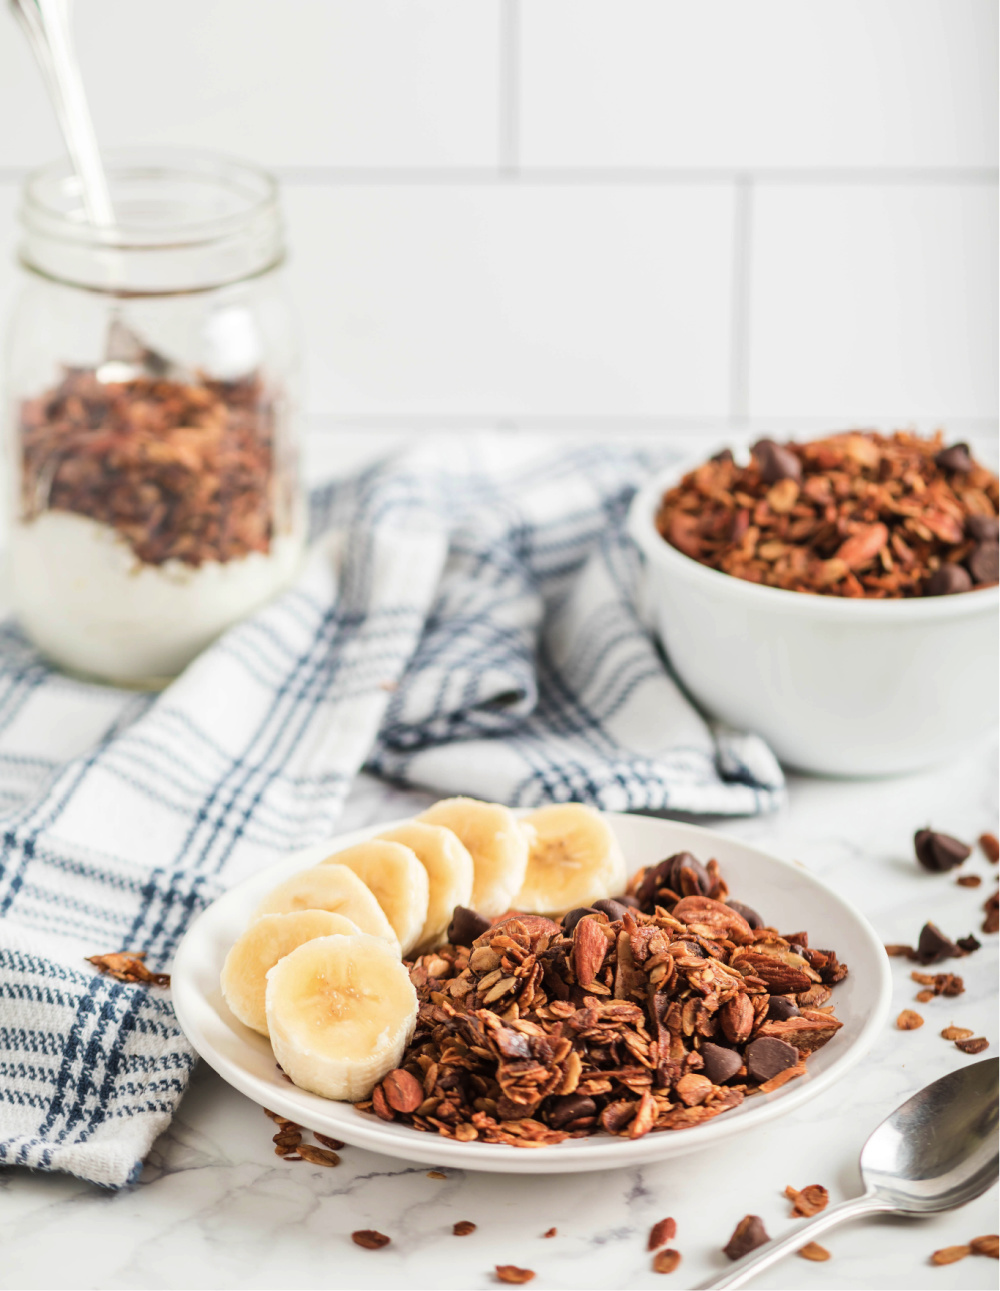 https://www.happygoluckyblog.com/wp-content/uploads/2020/07/Easy-Homemade-Granola-301.jpg